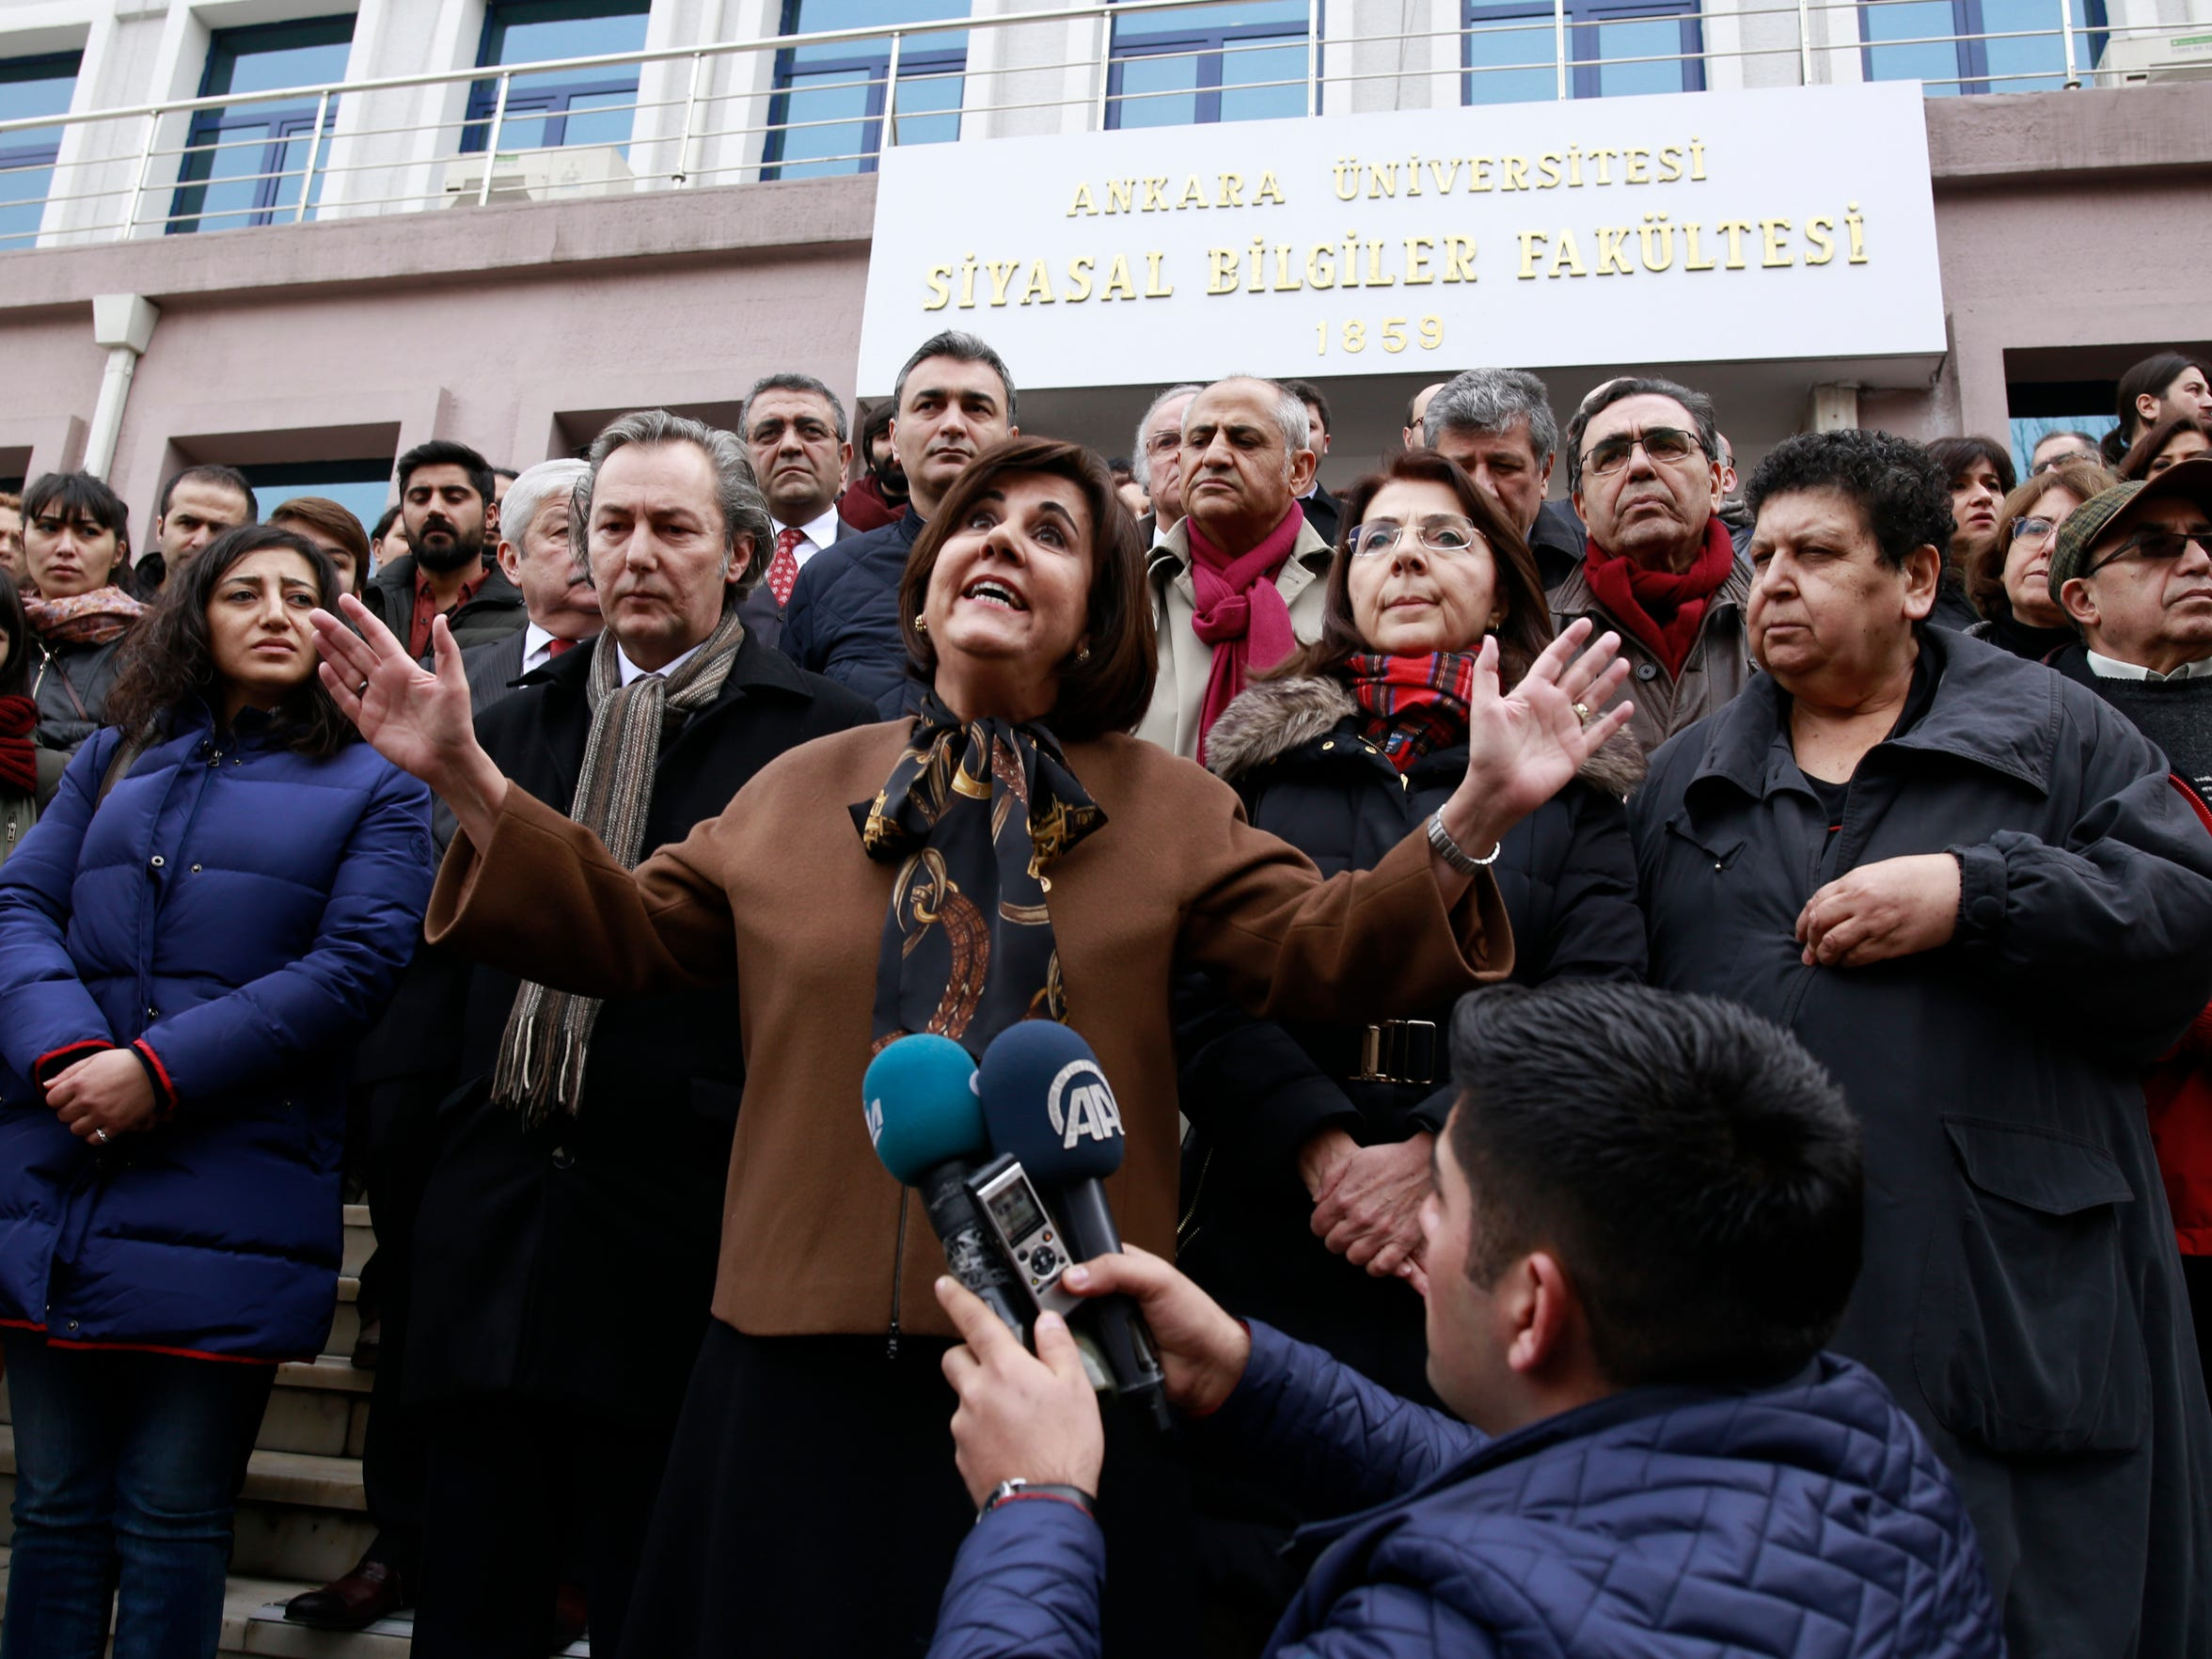 A woman gestures as people protest outside the Ankara University after Turkey's government sacked nearly 4,500 more state employees, including academicians, as it appeared to press ahead with a purge of people with suspected links to a U.S.-based cleric accused of orchestrating a failed military coup, in Ankara, Turkey, Wednesday, Feb. 8, 2017. Turkey declared a state of emergency following the failed July 15 attempt and embarked on a clamp down on Fethullah Gulen's movement, purging more than 100,000 of his followers who are accused of infiltrated the military, police and civil service.